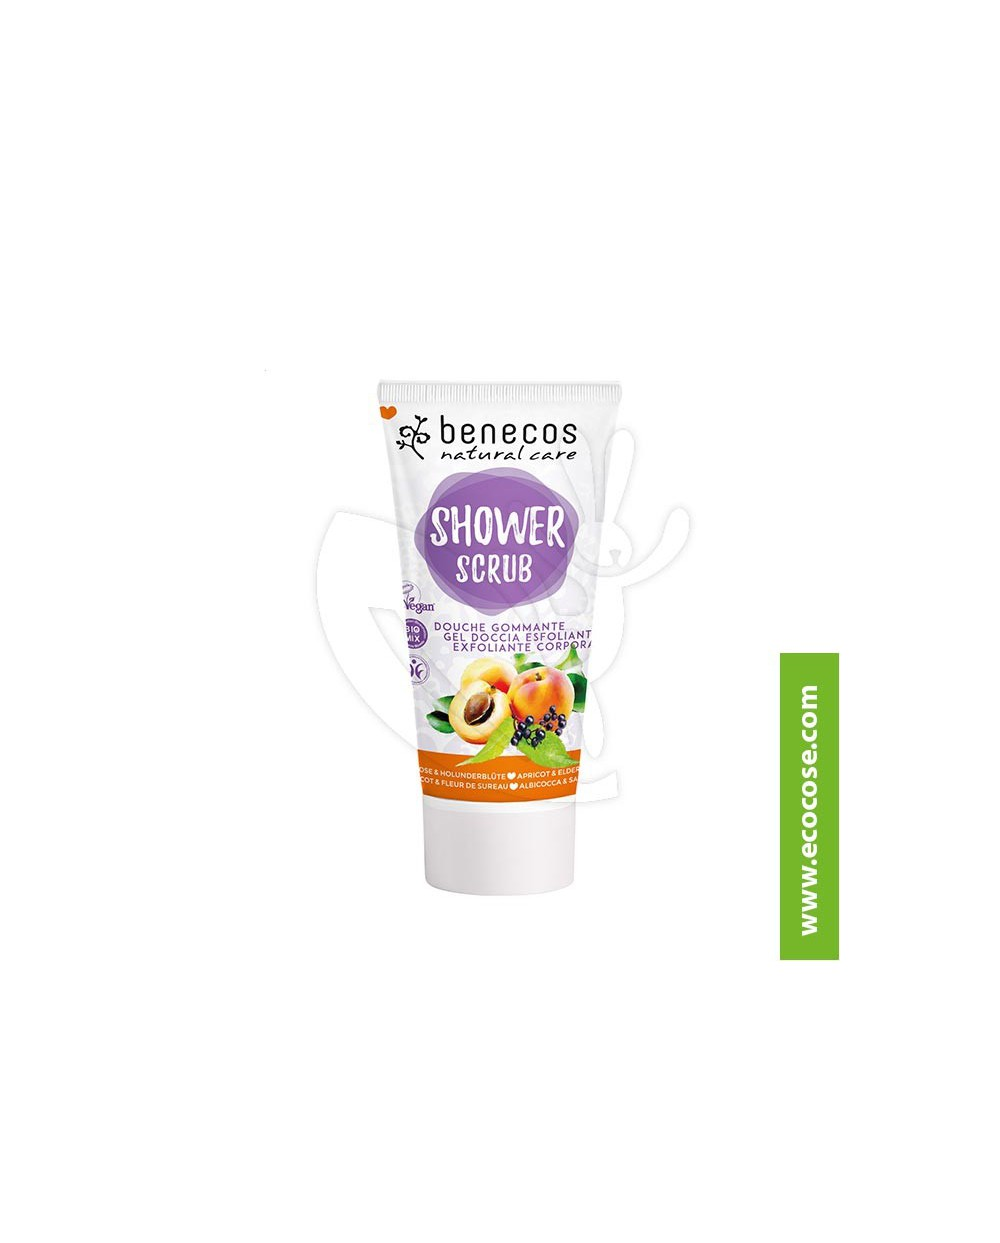 Benecos - Natural Care - Shower Scrub - Albicocca e Fiori di Sambuco